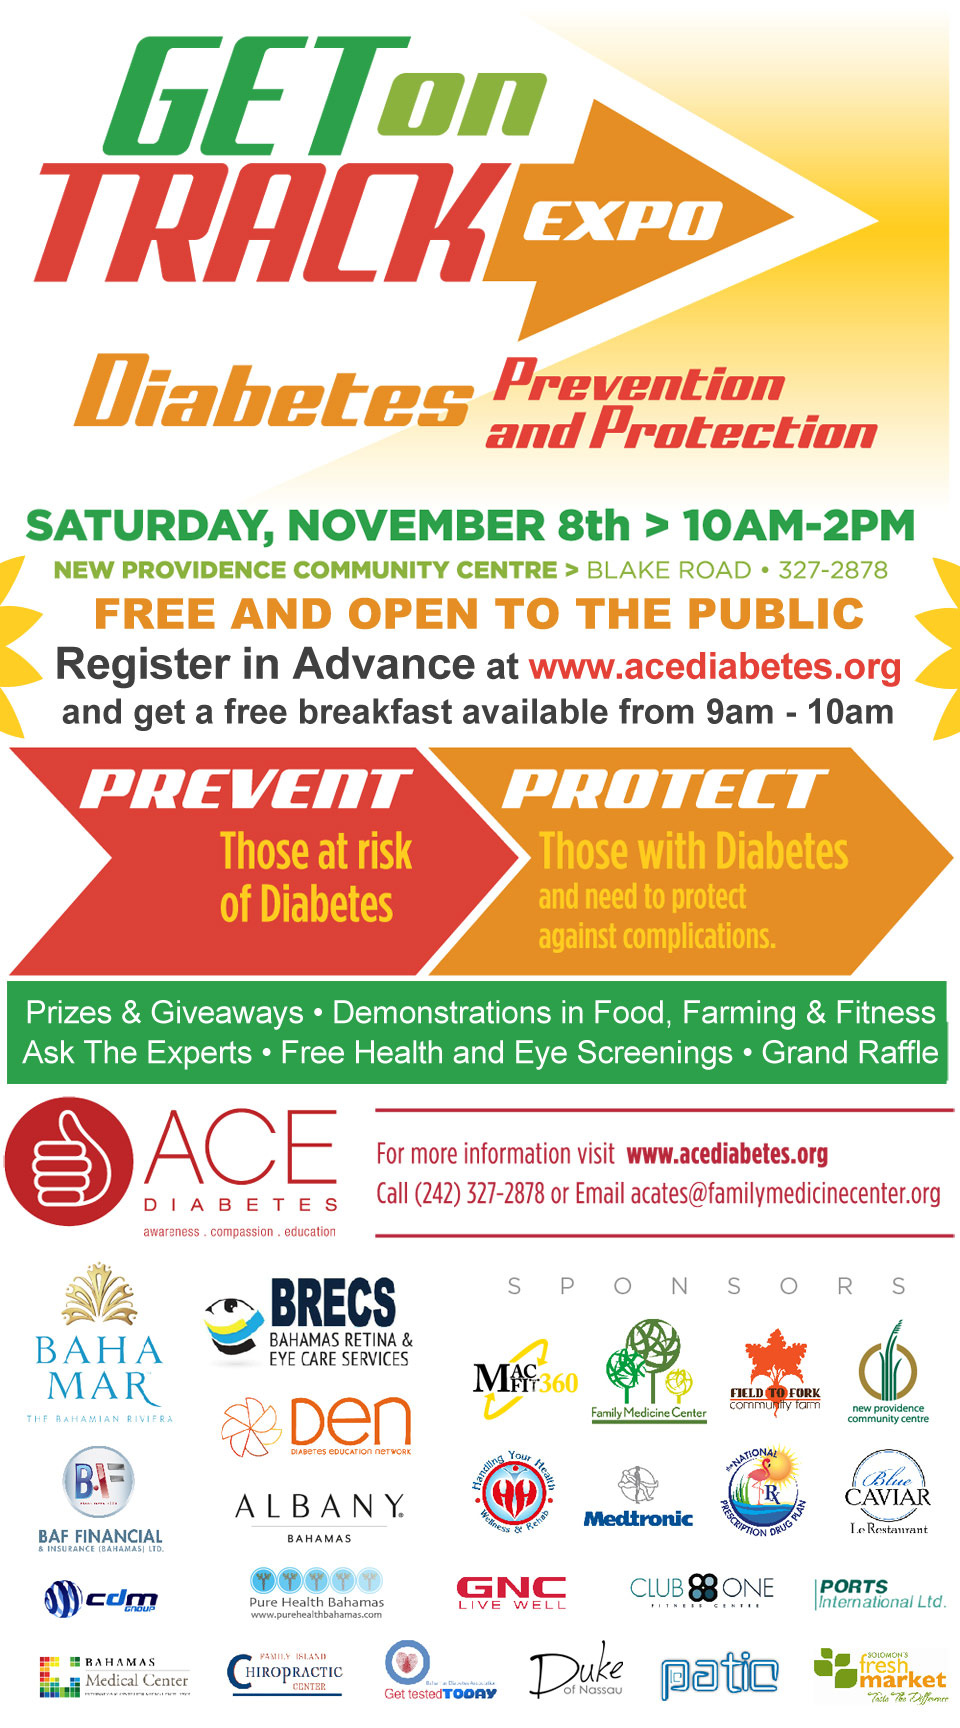 ace-diabetes-get-on-track-flyer-e